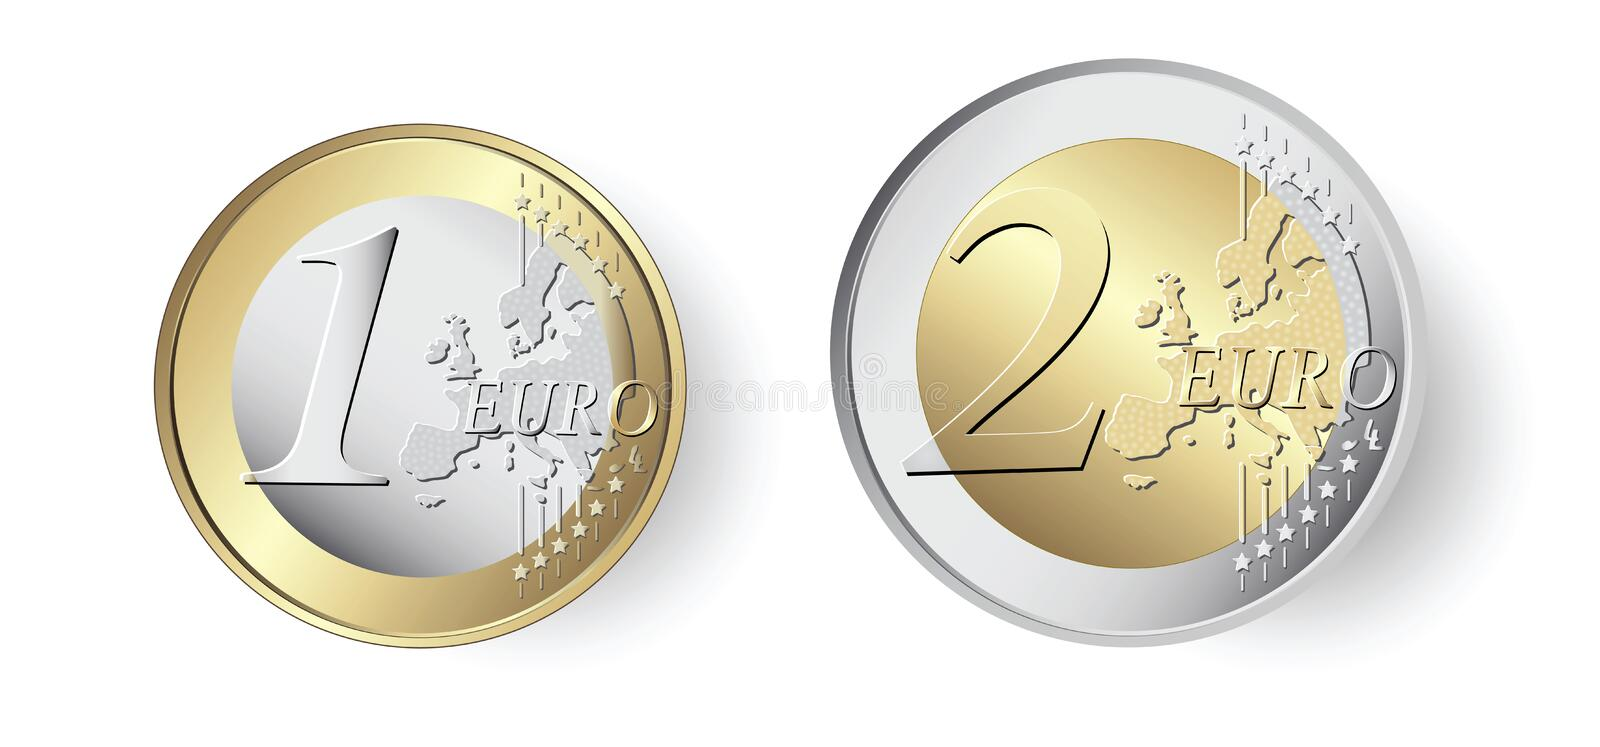 1 and 2 Euro coin royalty free stock photography